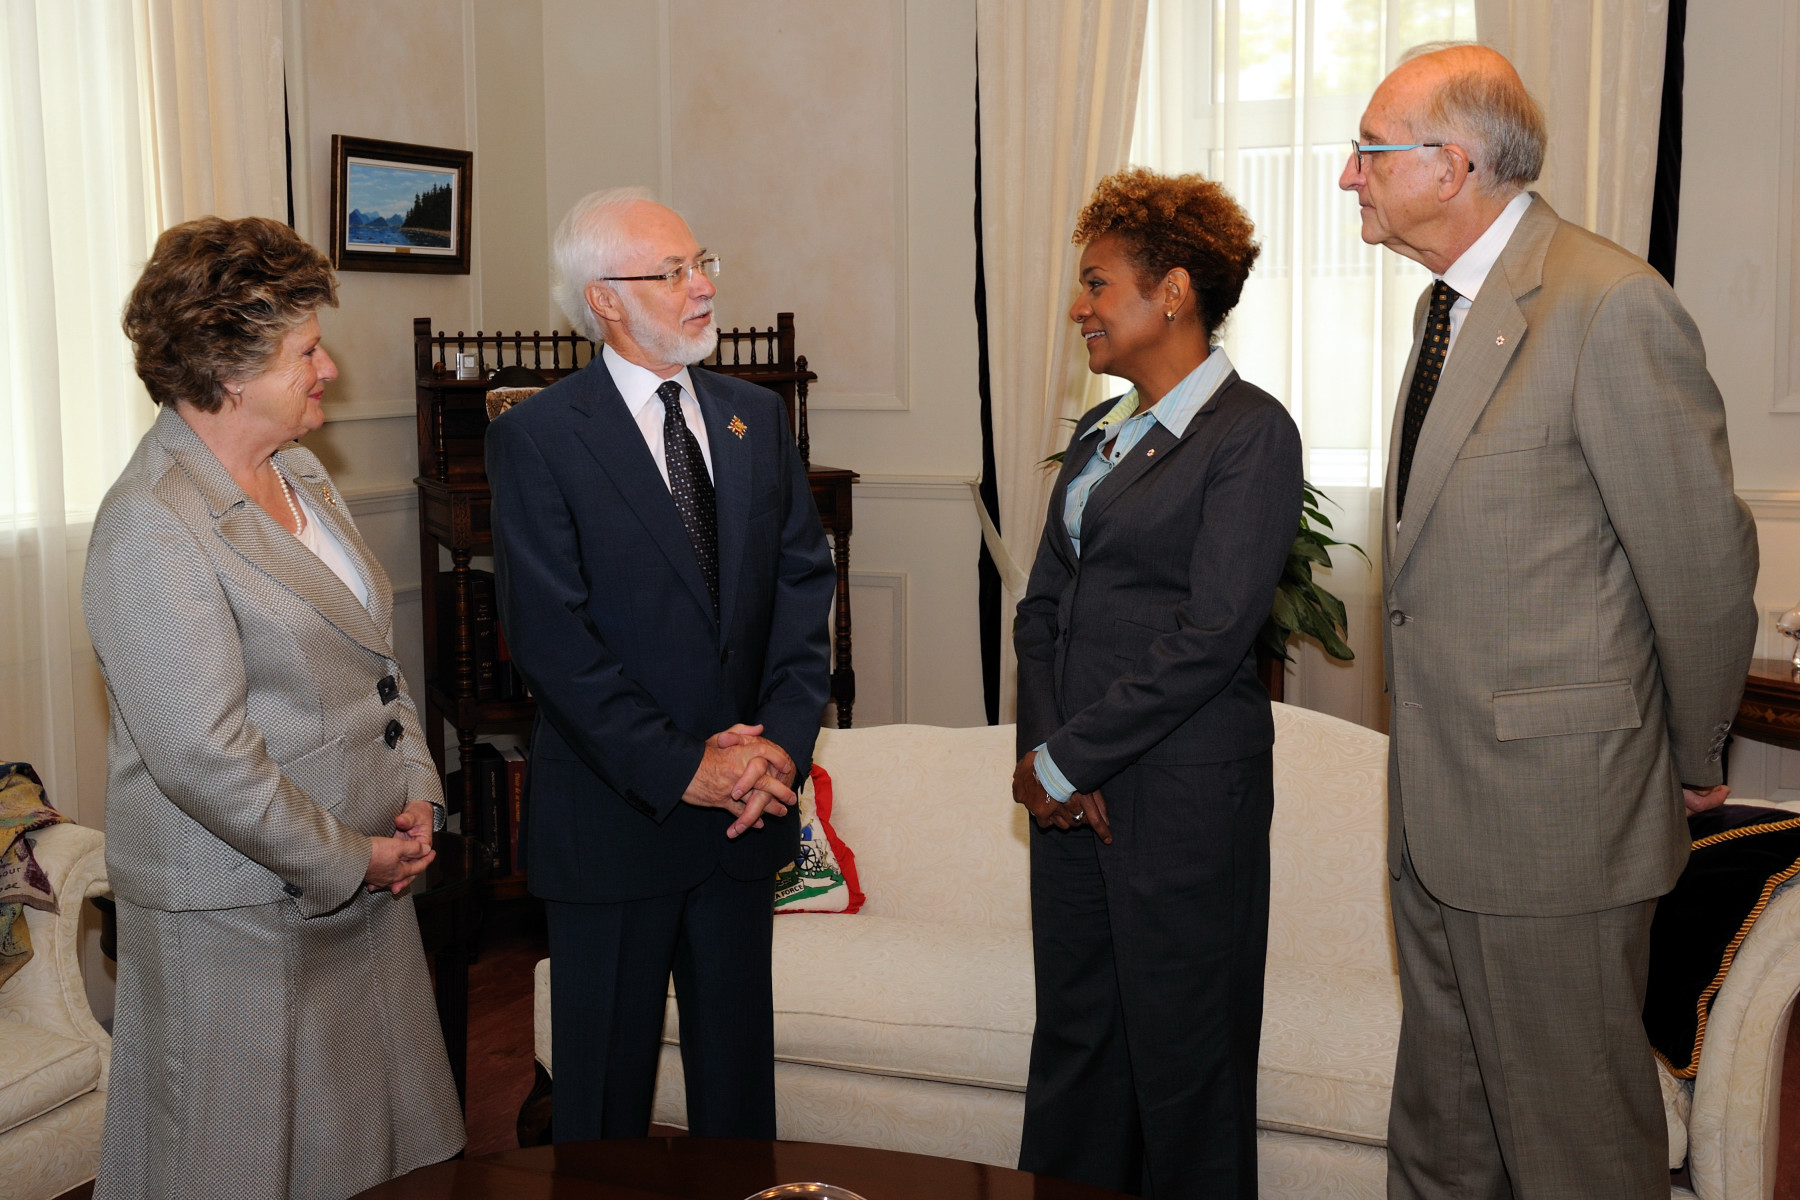 During their visit to Québec City, Their Excellencies also met with the Honourable Pierre Duchesne, Lieutenant Governor of Quebec, and his wife.